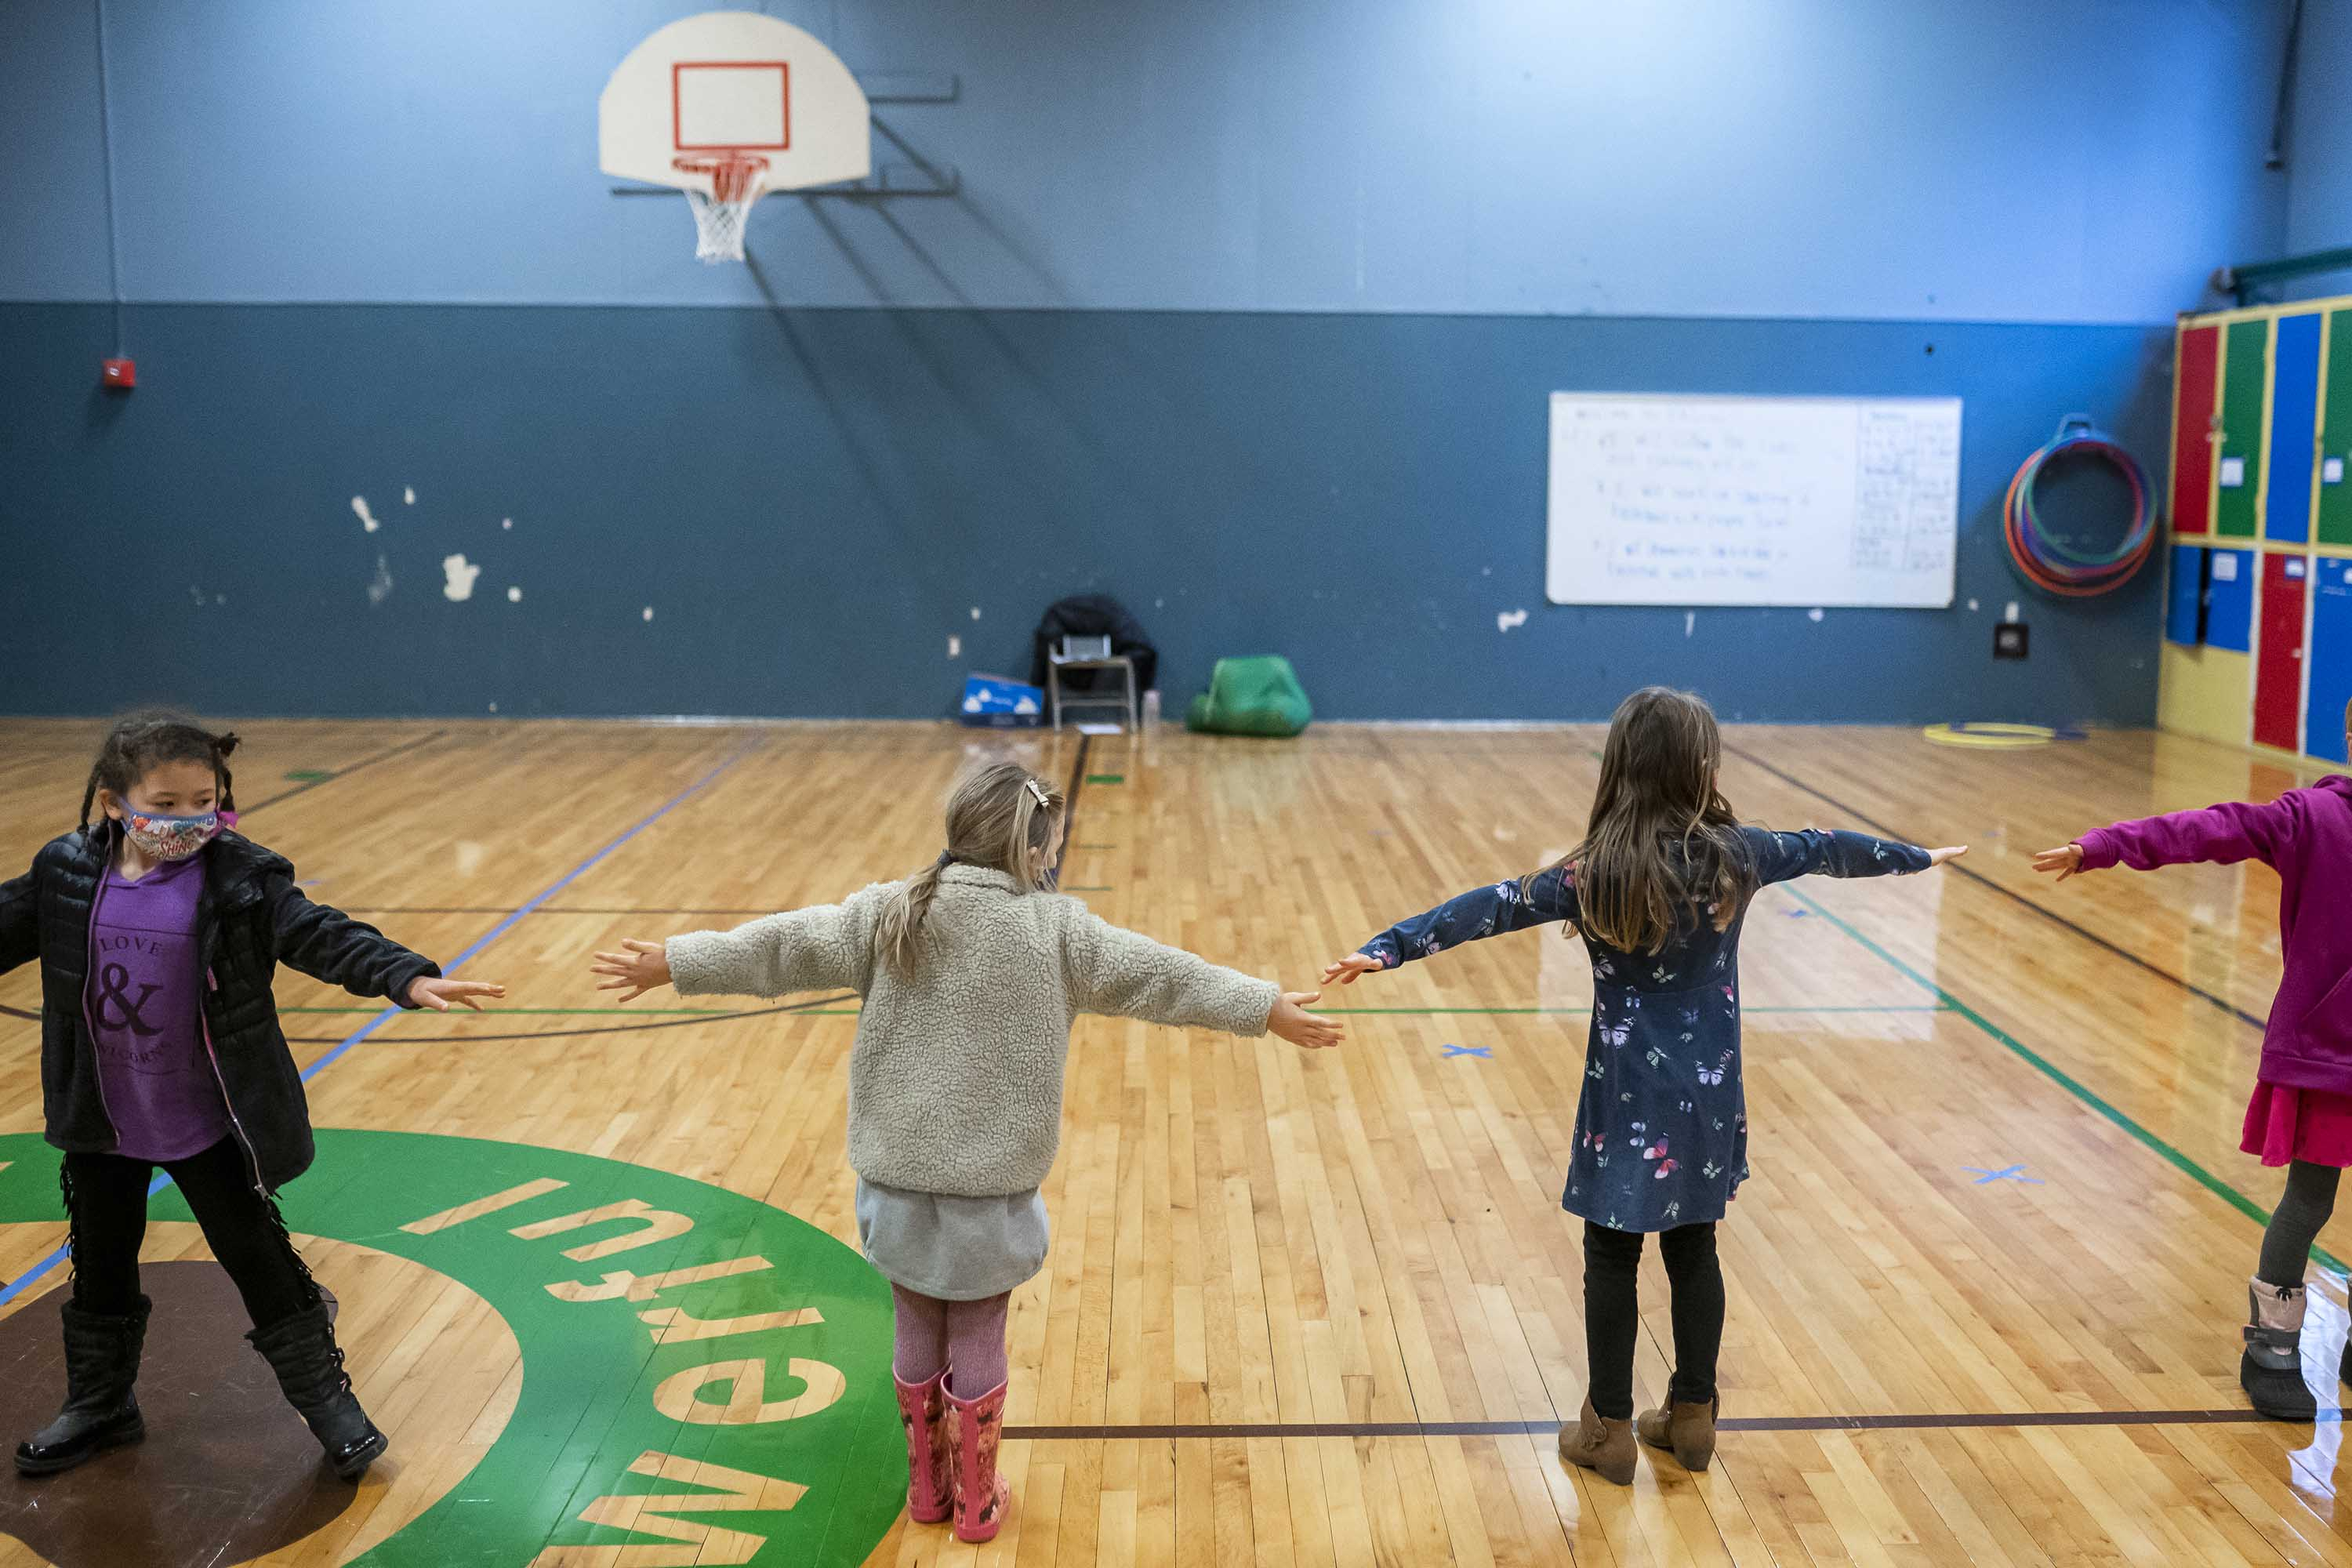 First grade students practice social distancing at the Green Mountain School in Woodland, Washington, on February 18.